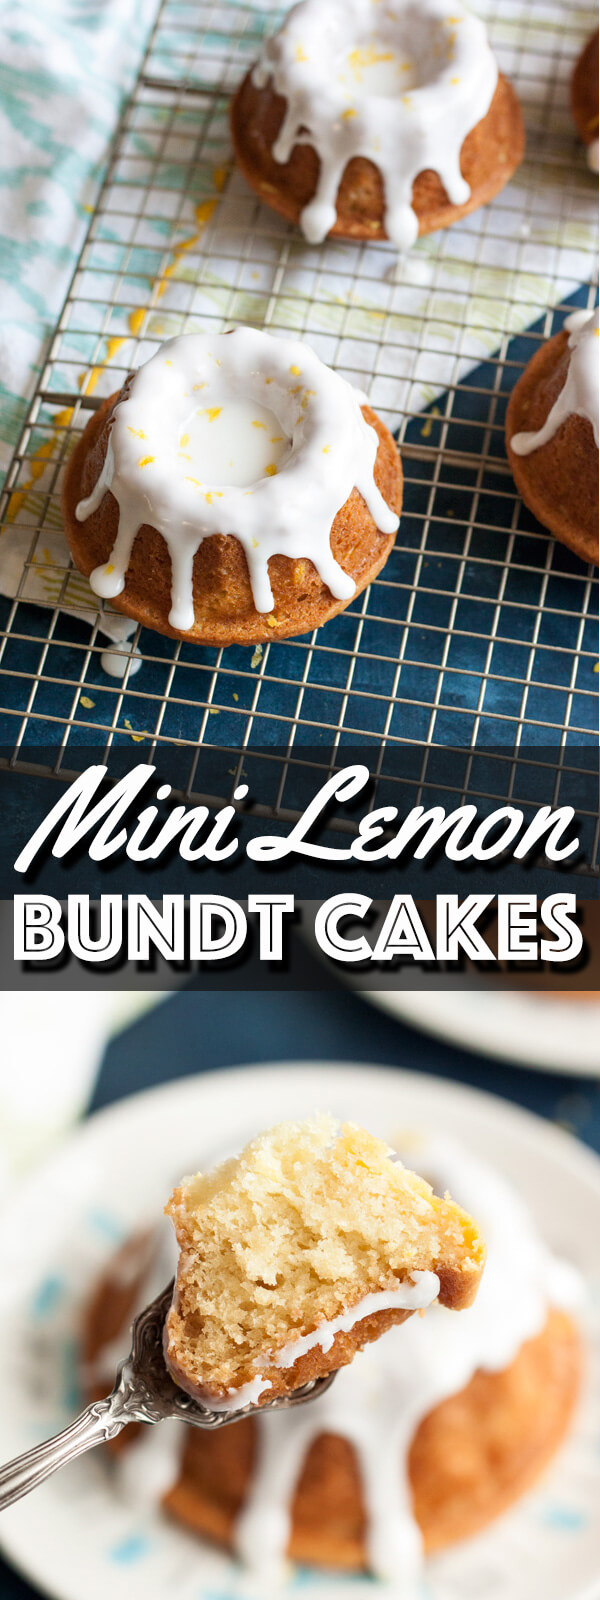 These Mini Lemon Bundt Cakes may be mini, but they pack a big punch of lemon flavor, from the cake batter all the way to the icing. They're moist, sweet, tangy and refreshing, everything you will love. | wildwildwhisk.com #lemonbundtcakes #lemonicing